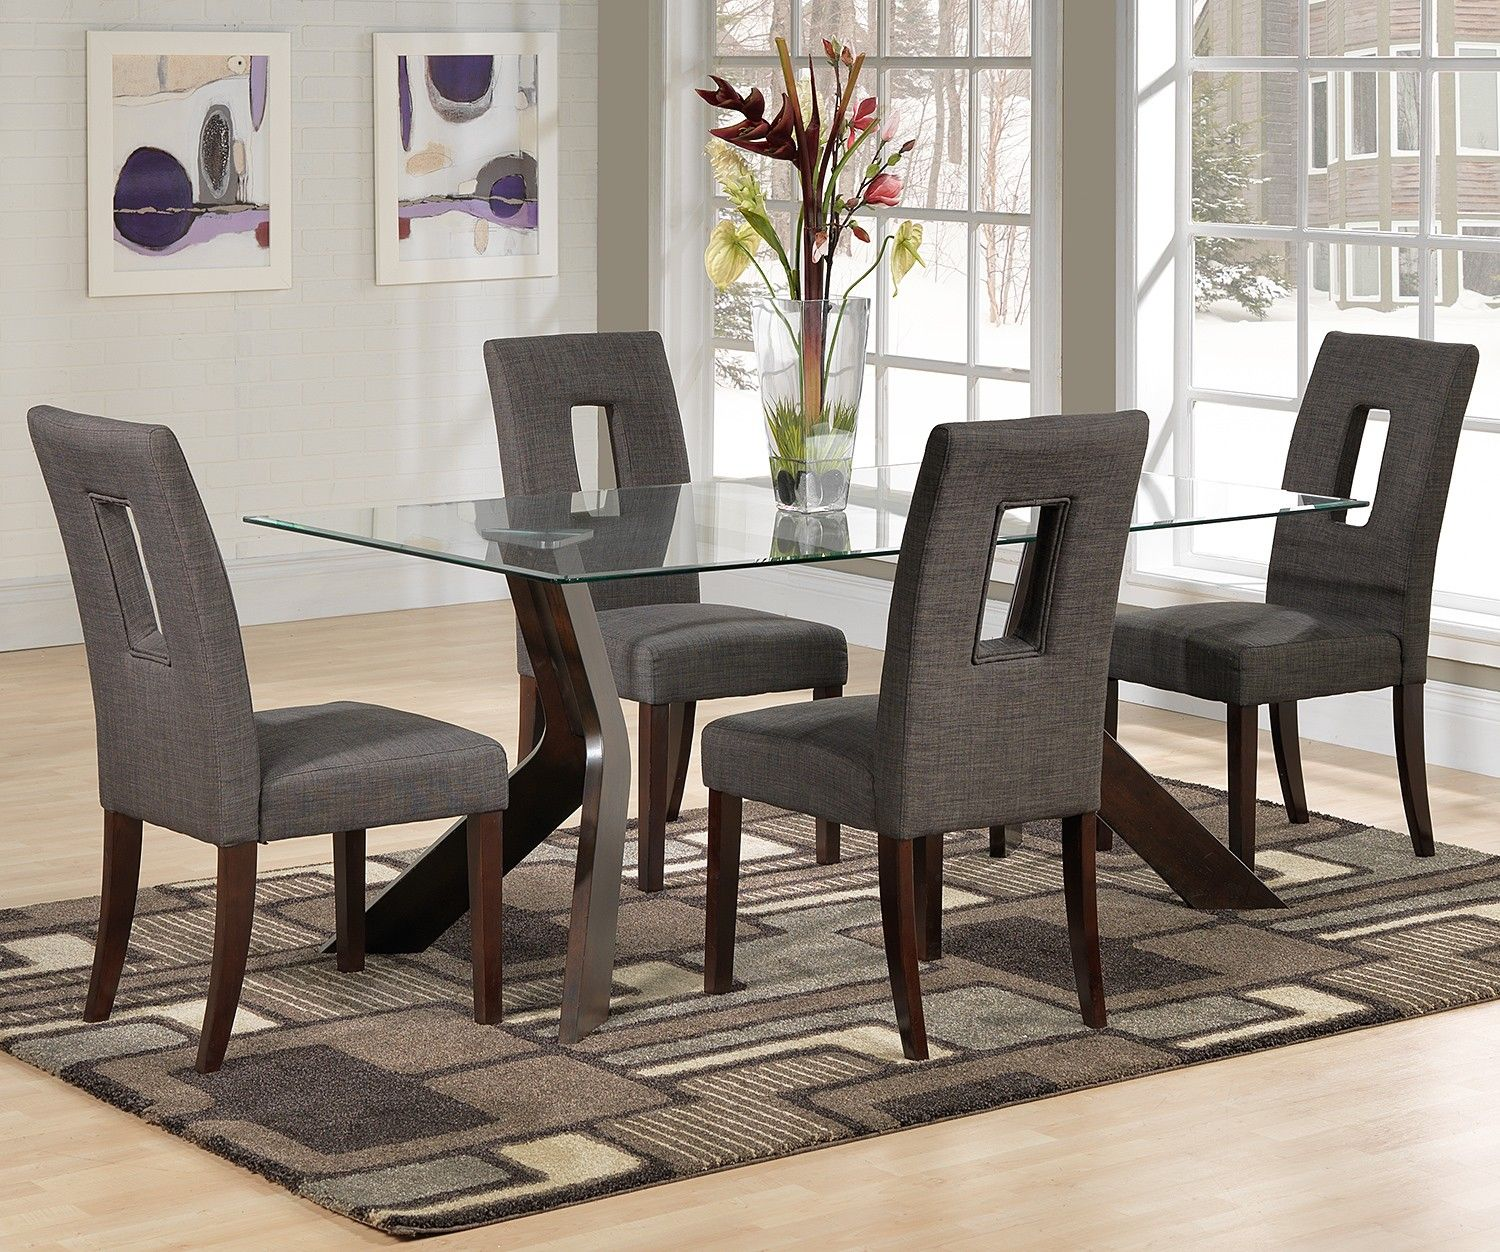 Cheap Contemporary Dining Room Sets: Dining Room Chairs, Contemporary Dining